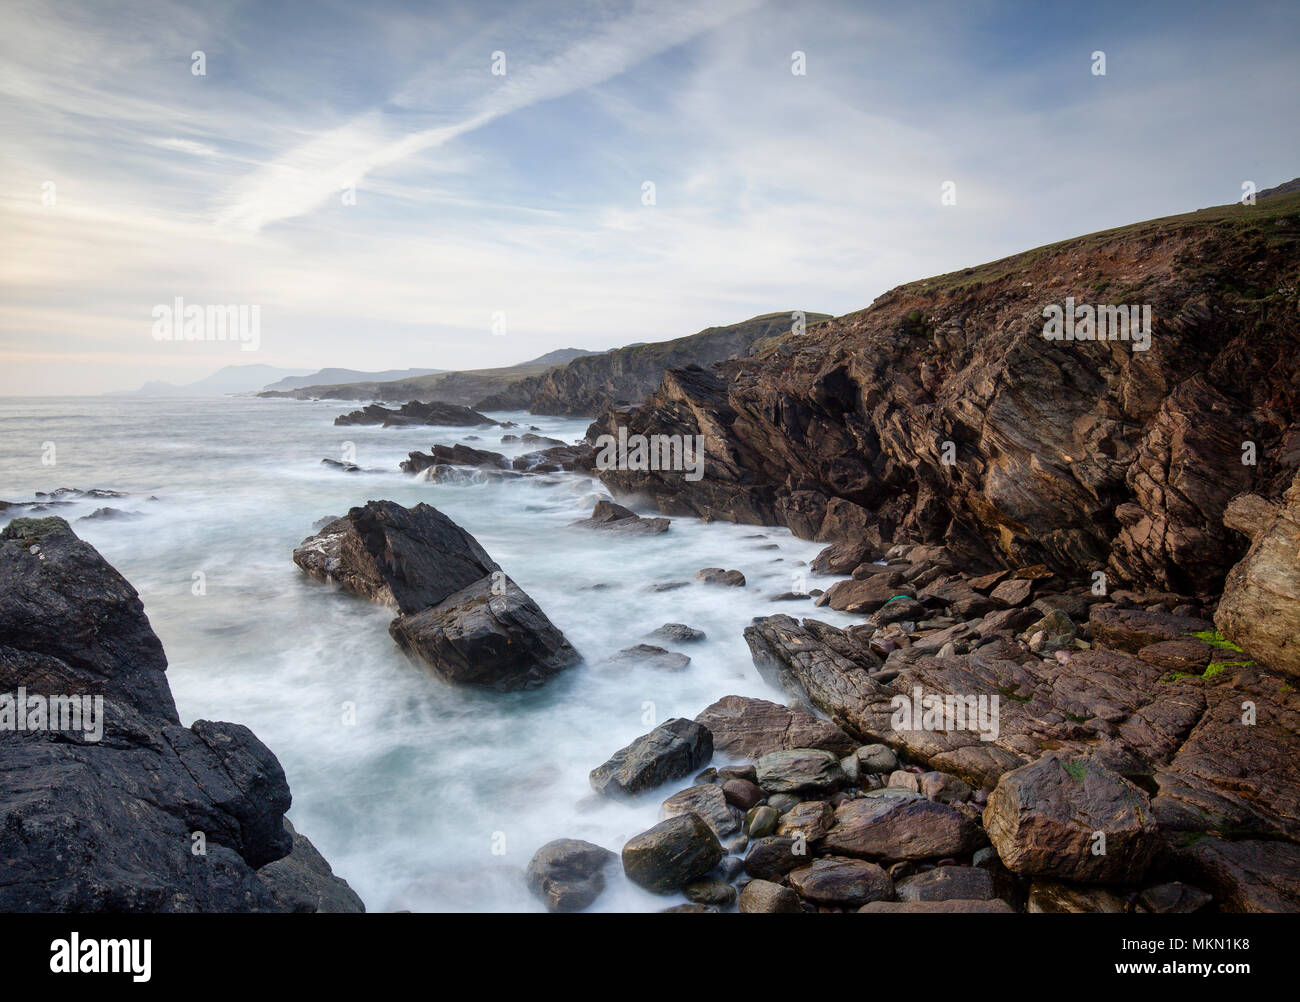 Coastline of Achill Island a destination in County Mayo with dramatic skies and waves breaking. - Stock Image